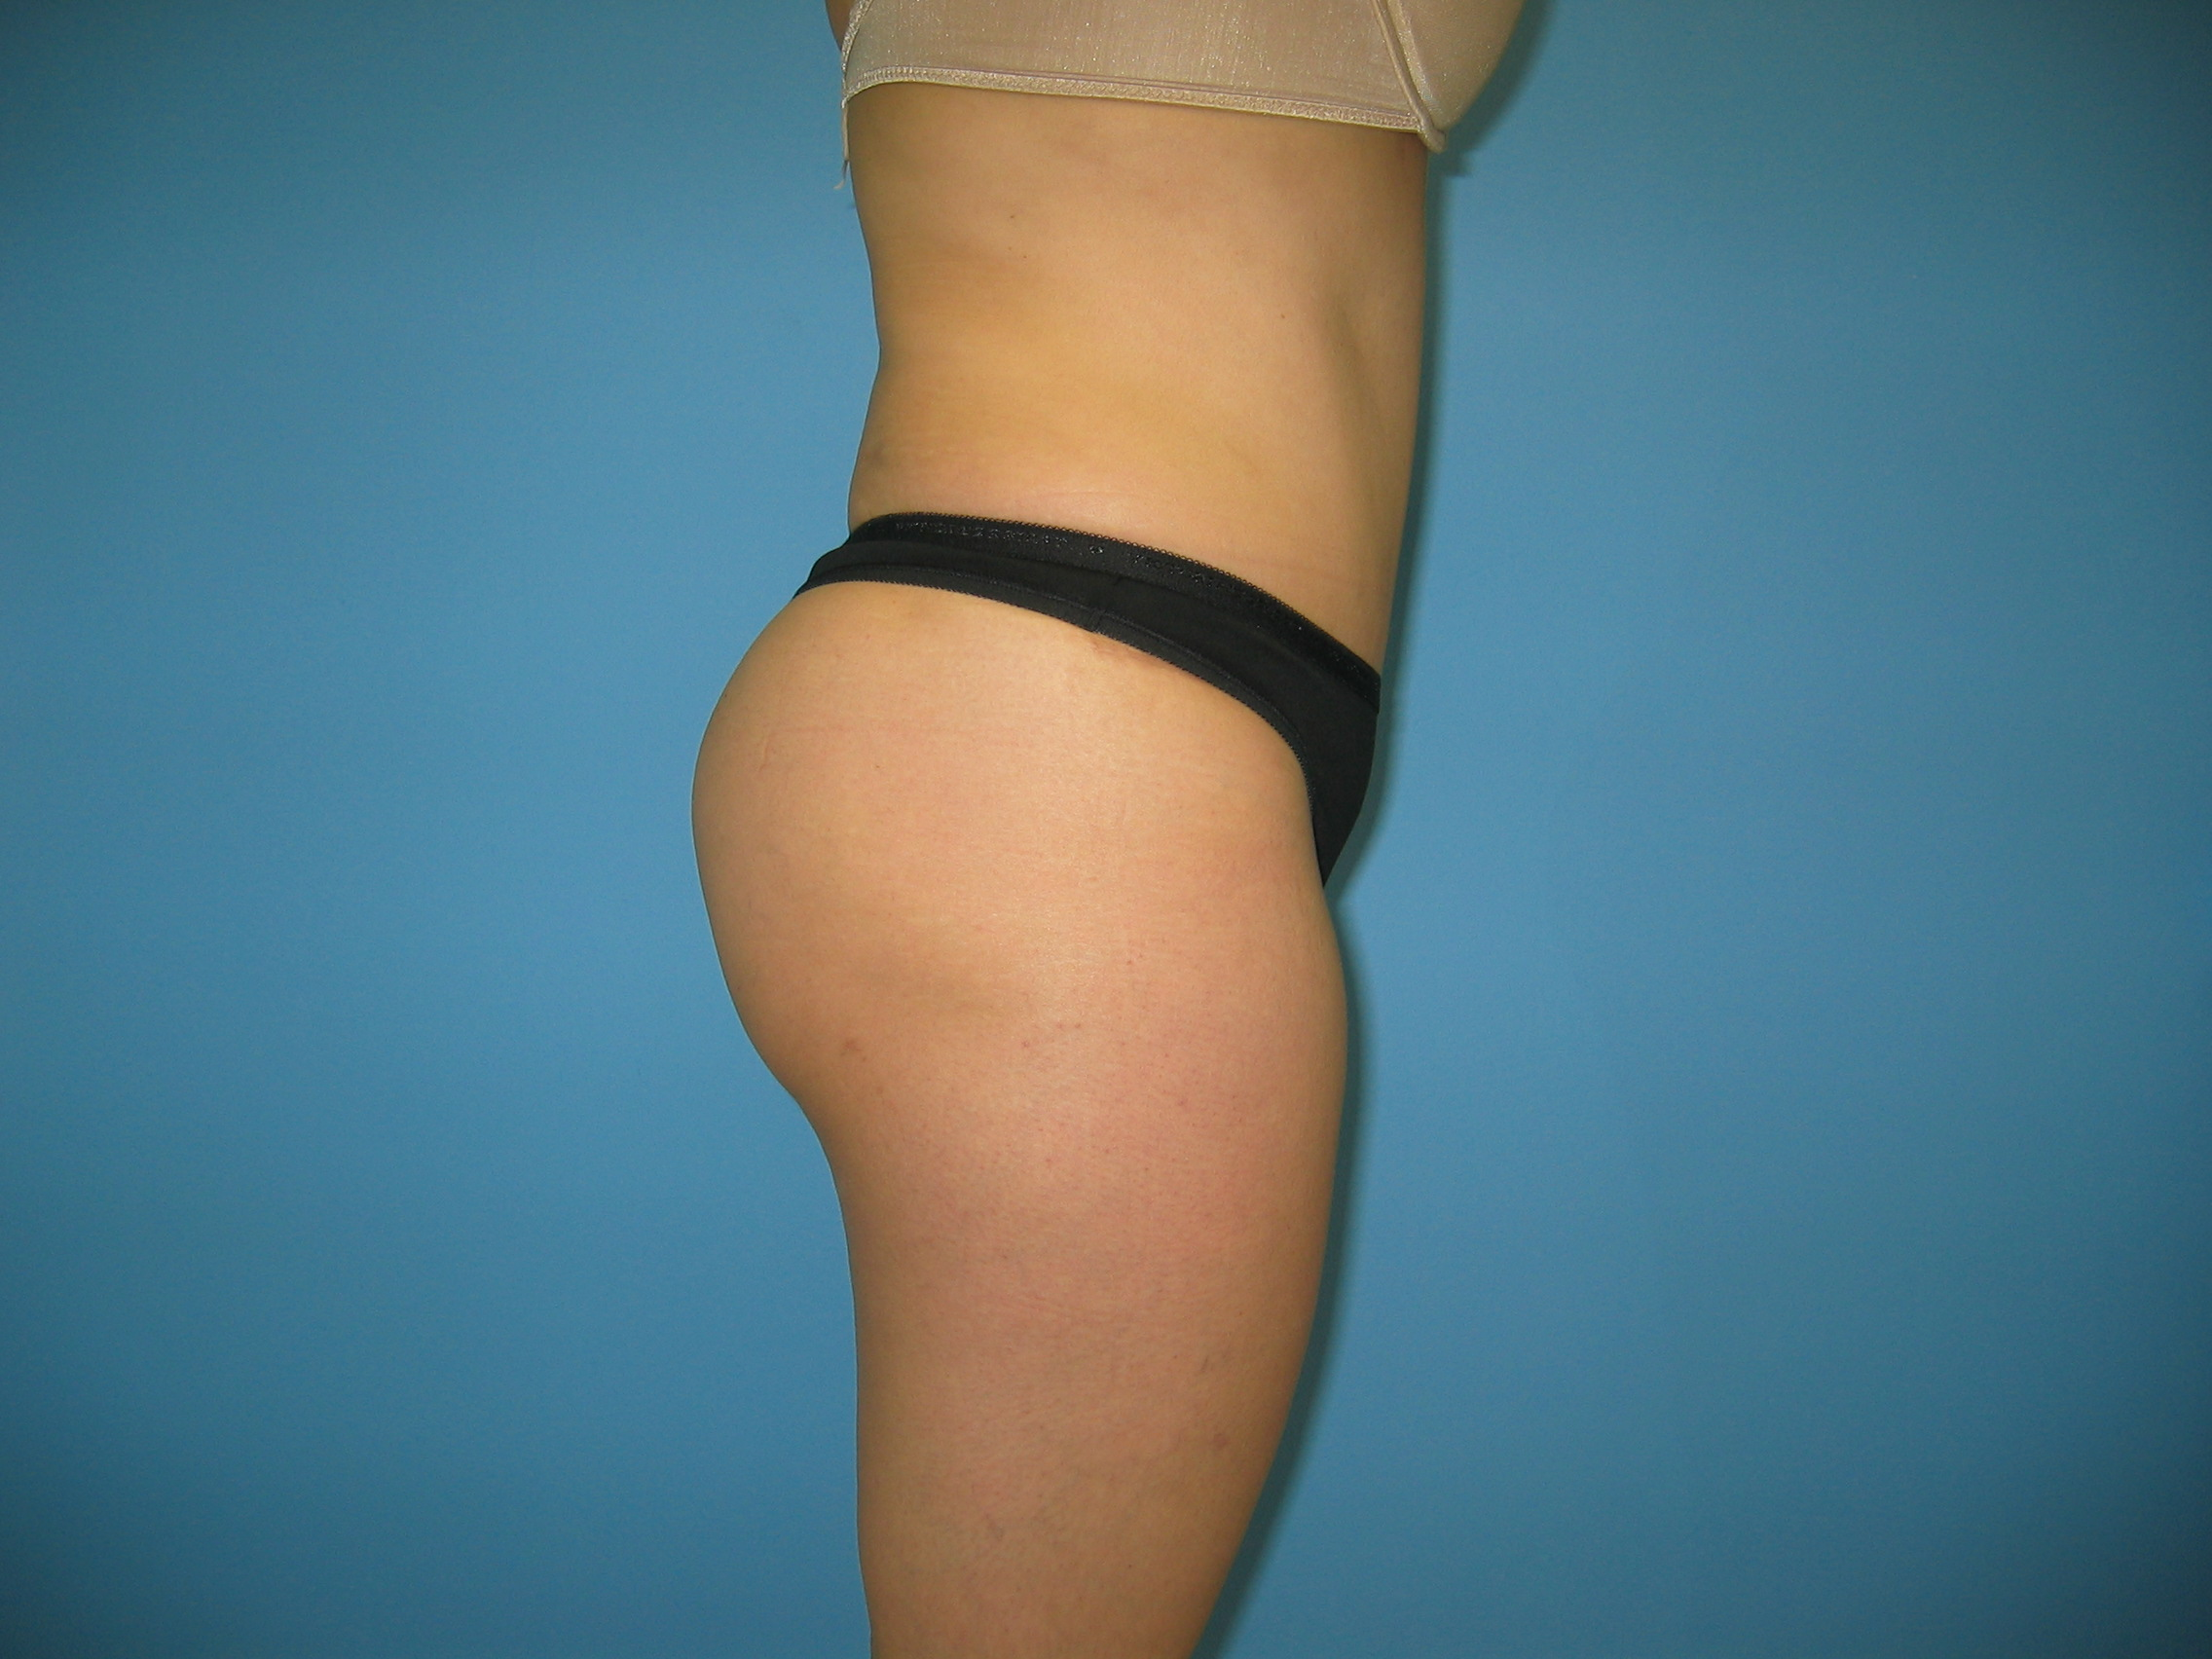 Brazilian buttock lift tummy tuck patient